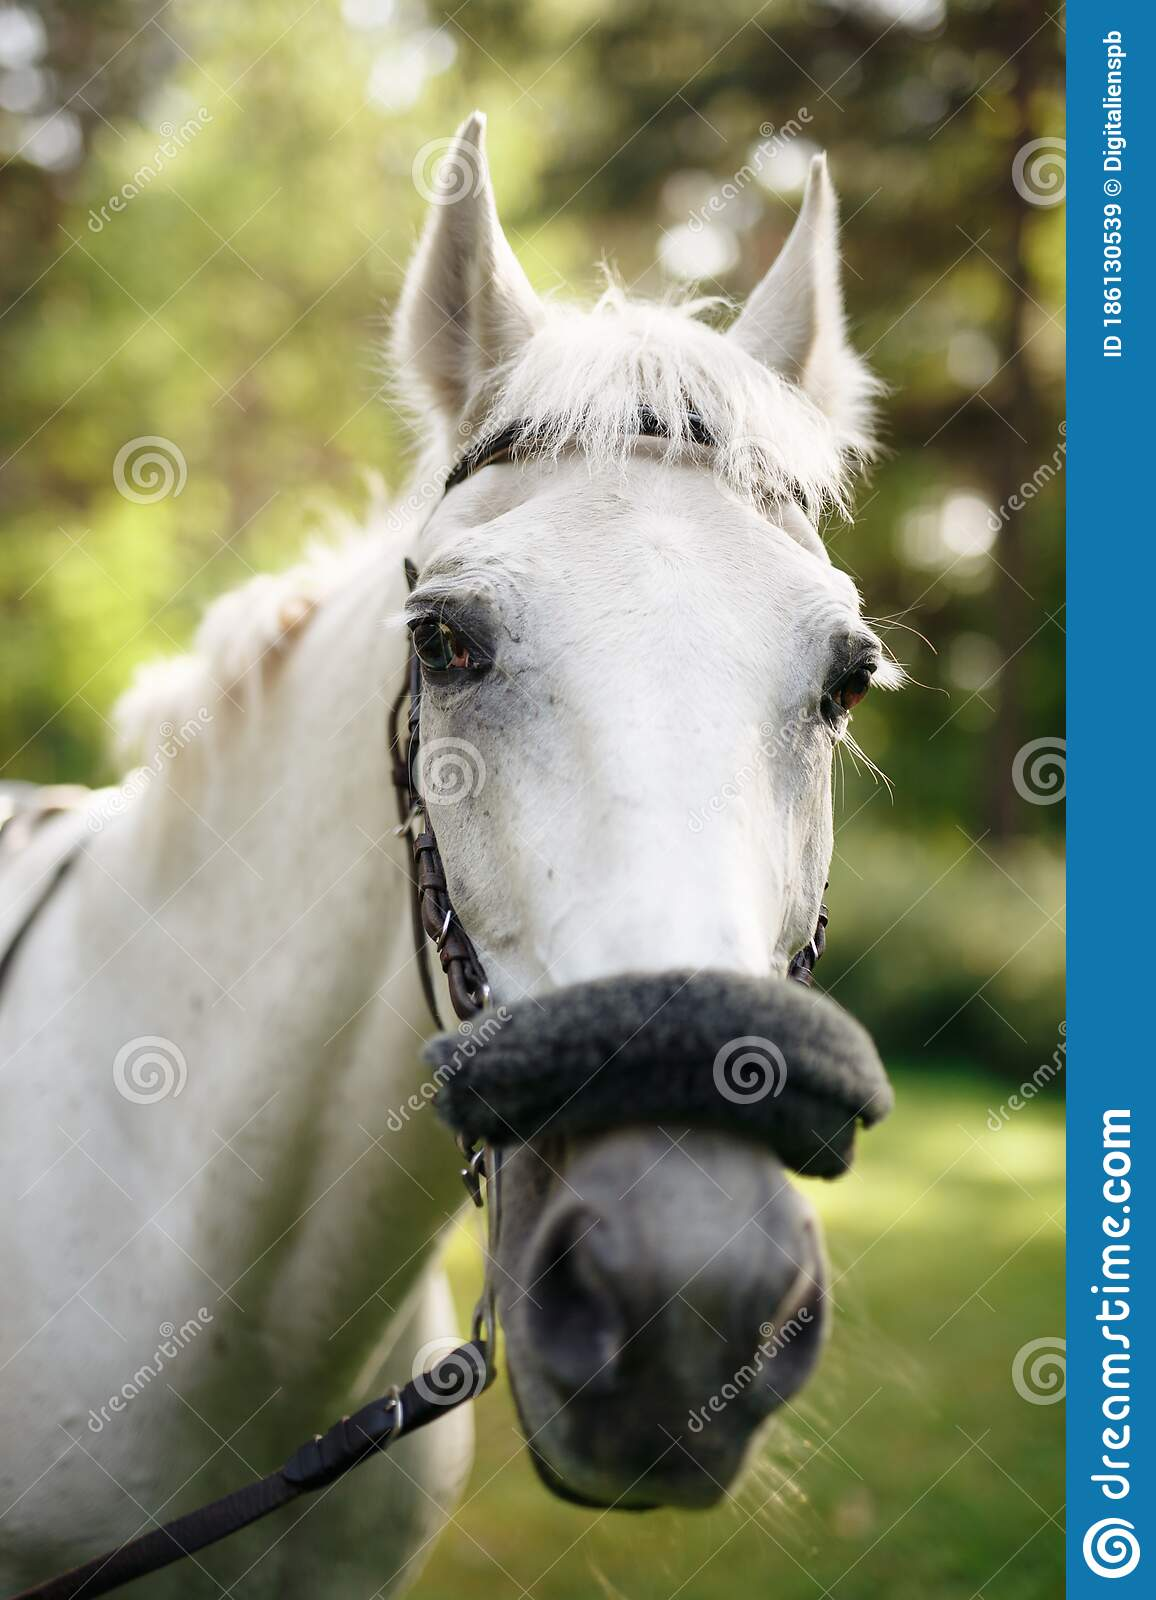 34 461 White Horse Head Photos Free Royalty Free Stock Photos From Dreamstime